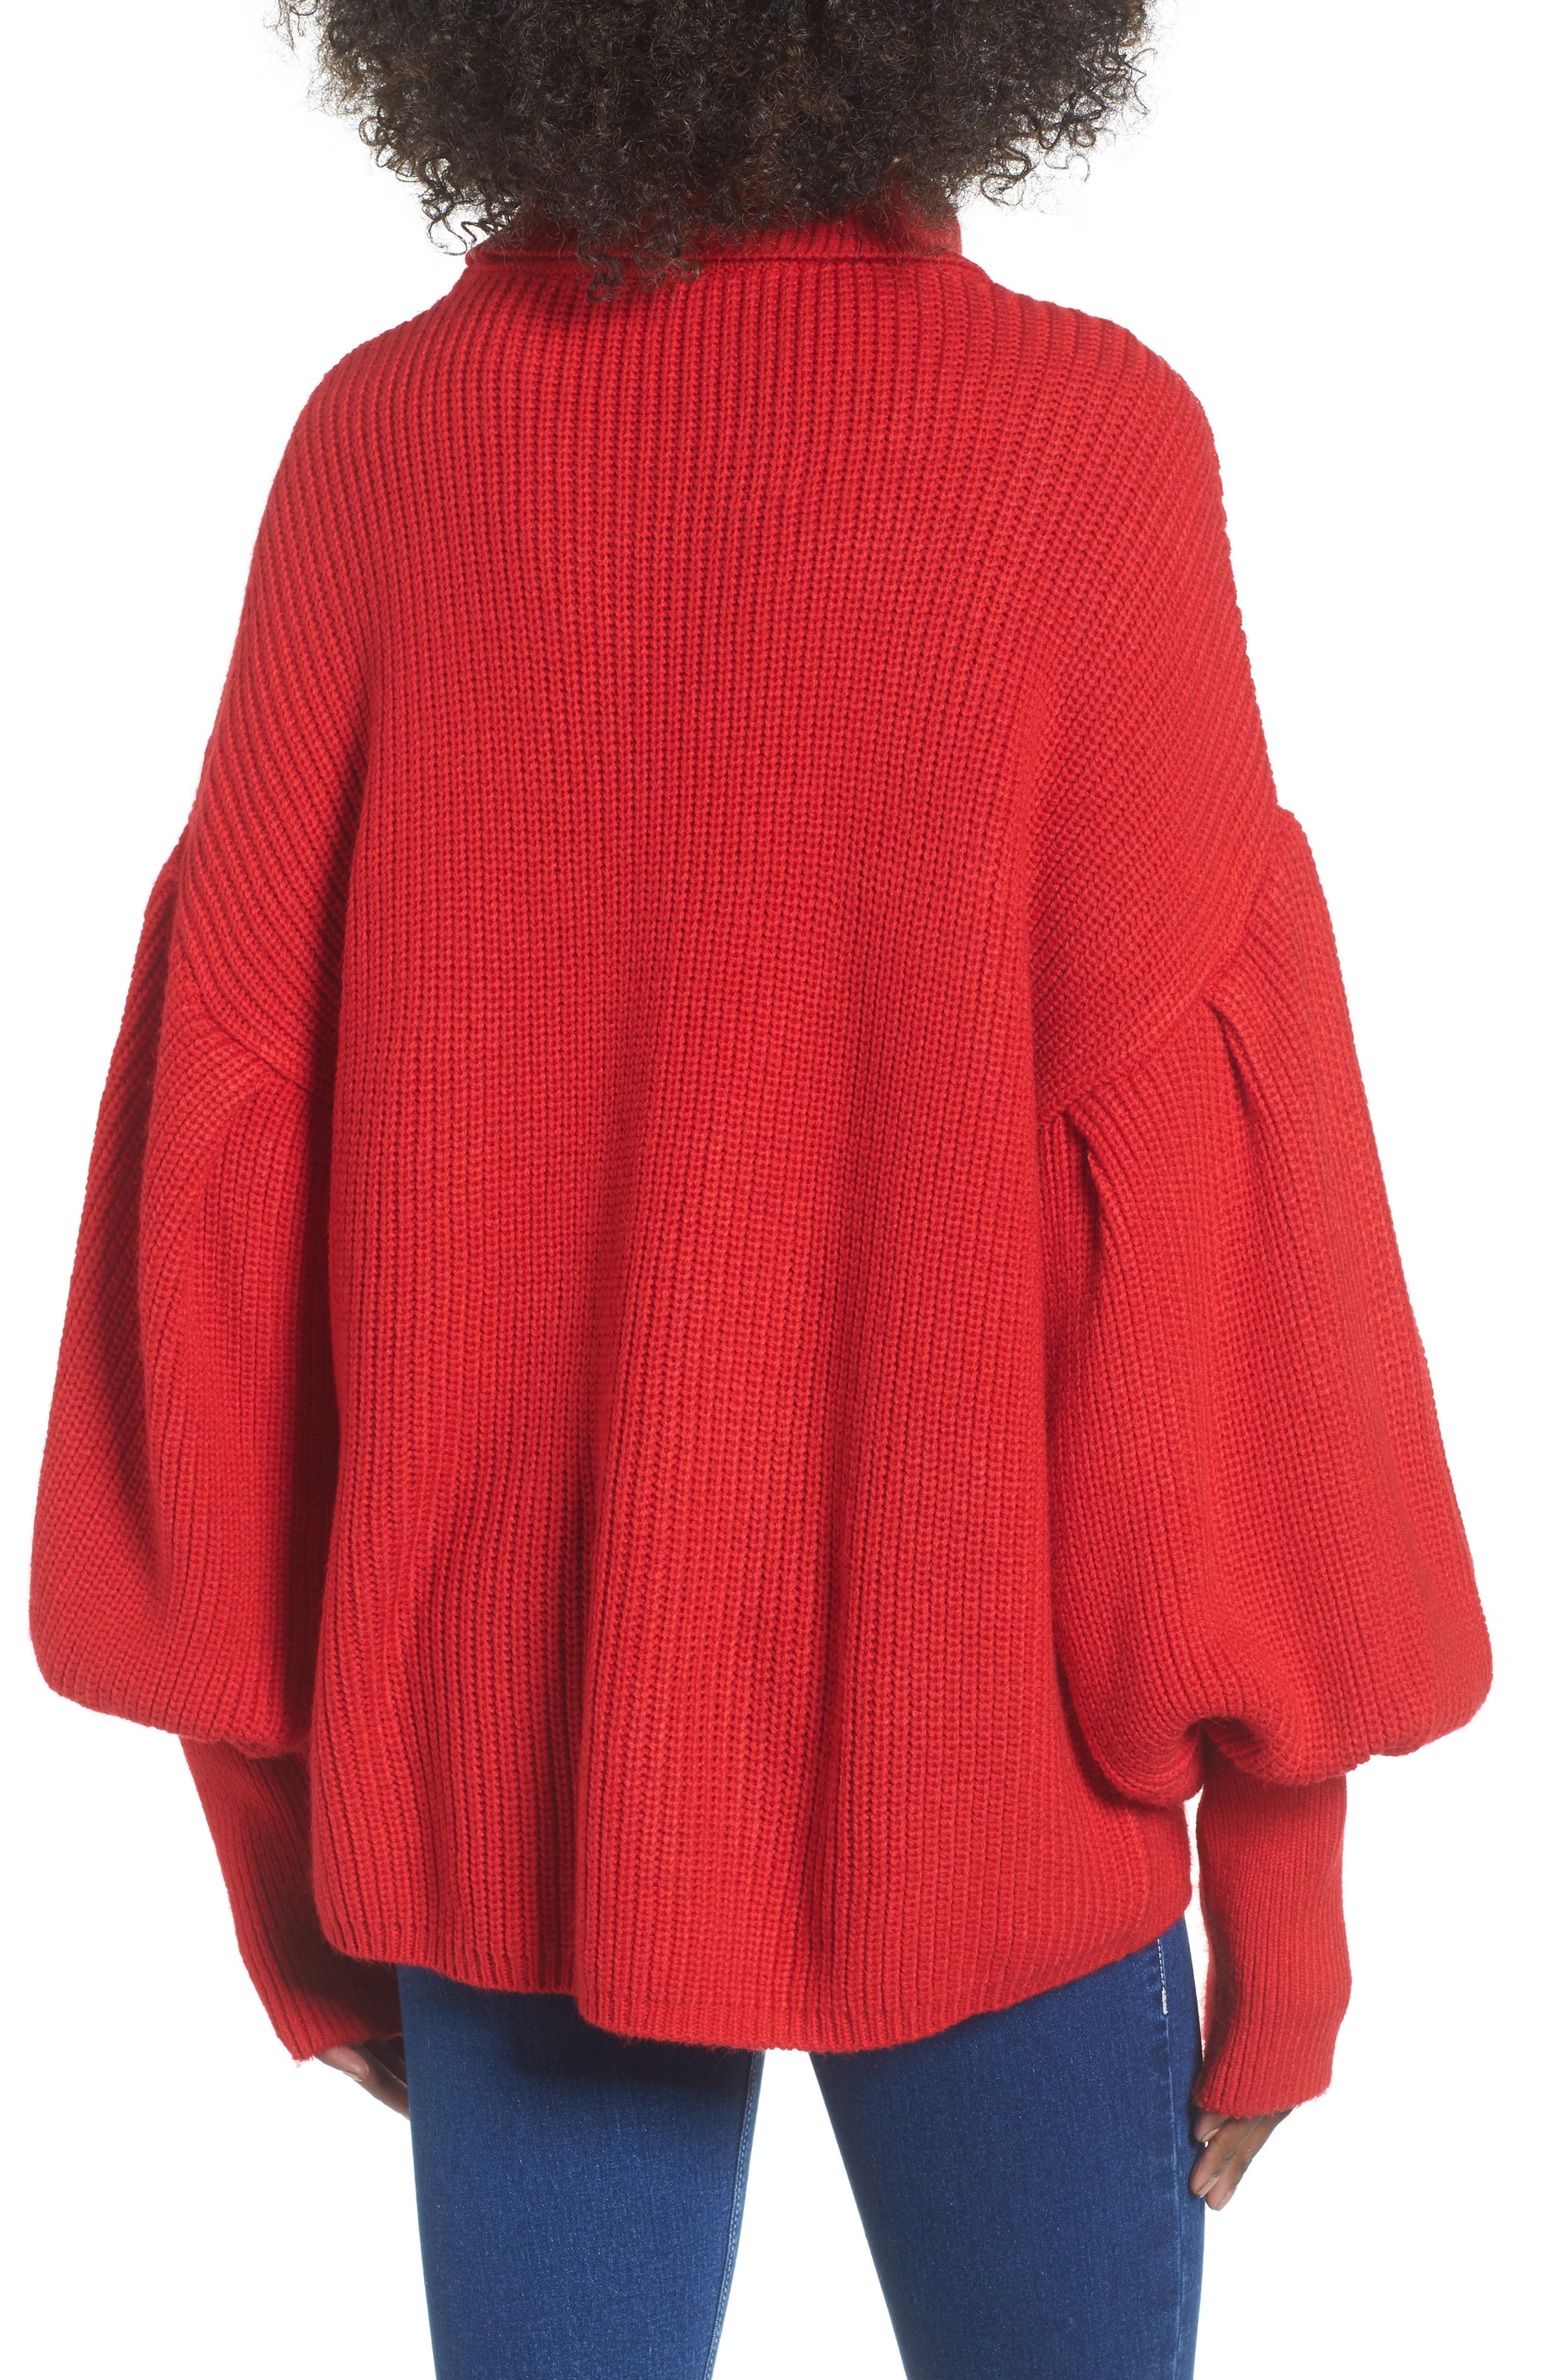 Balloon Sleeve Turtleneck Sweater,                             Alternate thumbnail 4, color,                             Red